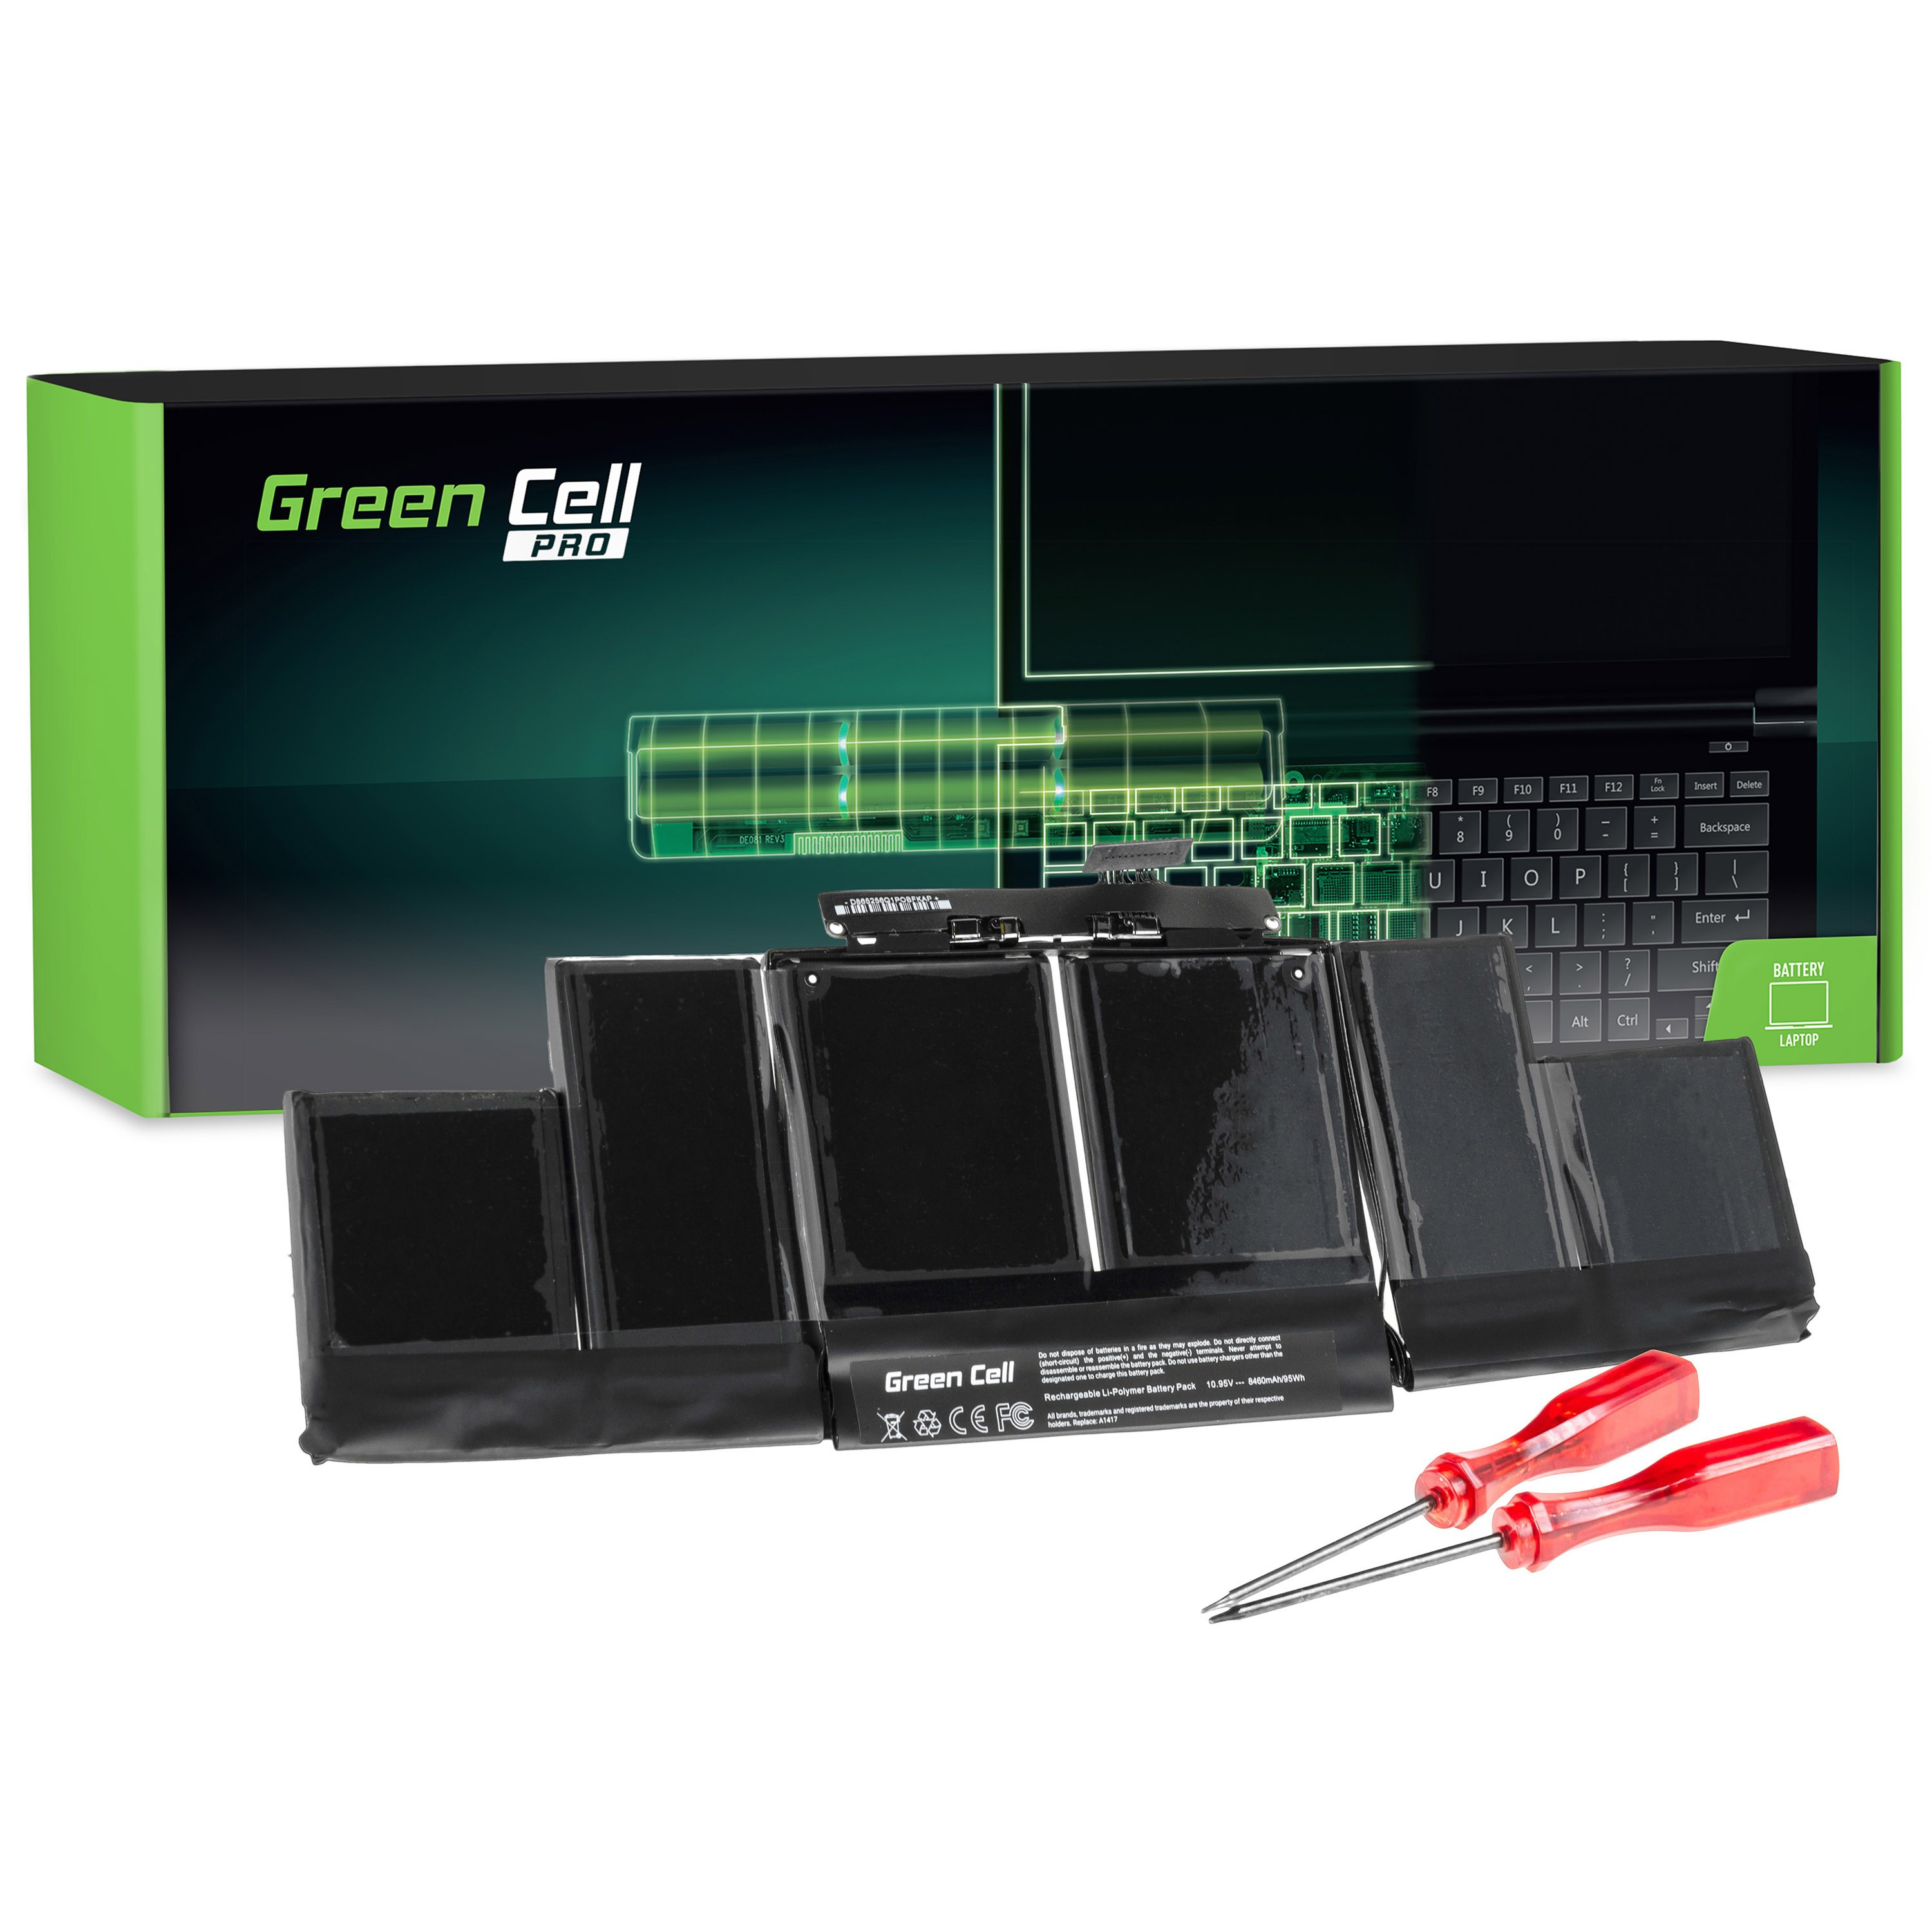 Green Cell PRO Baterie pro Apple Macbook Pro 15 A1398 (Mid 2012, Early 2013) / 10,95V 8700mAh